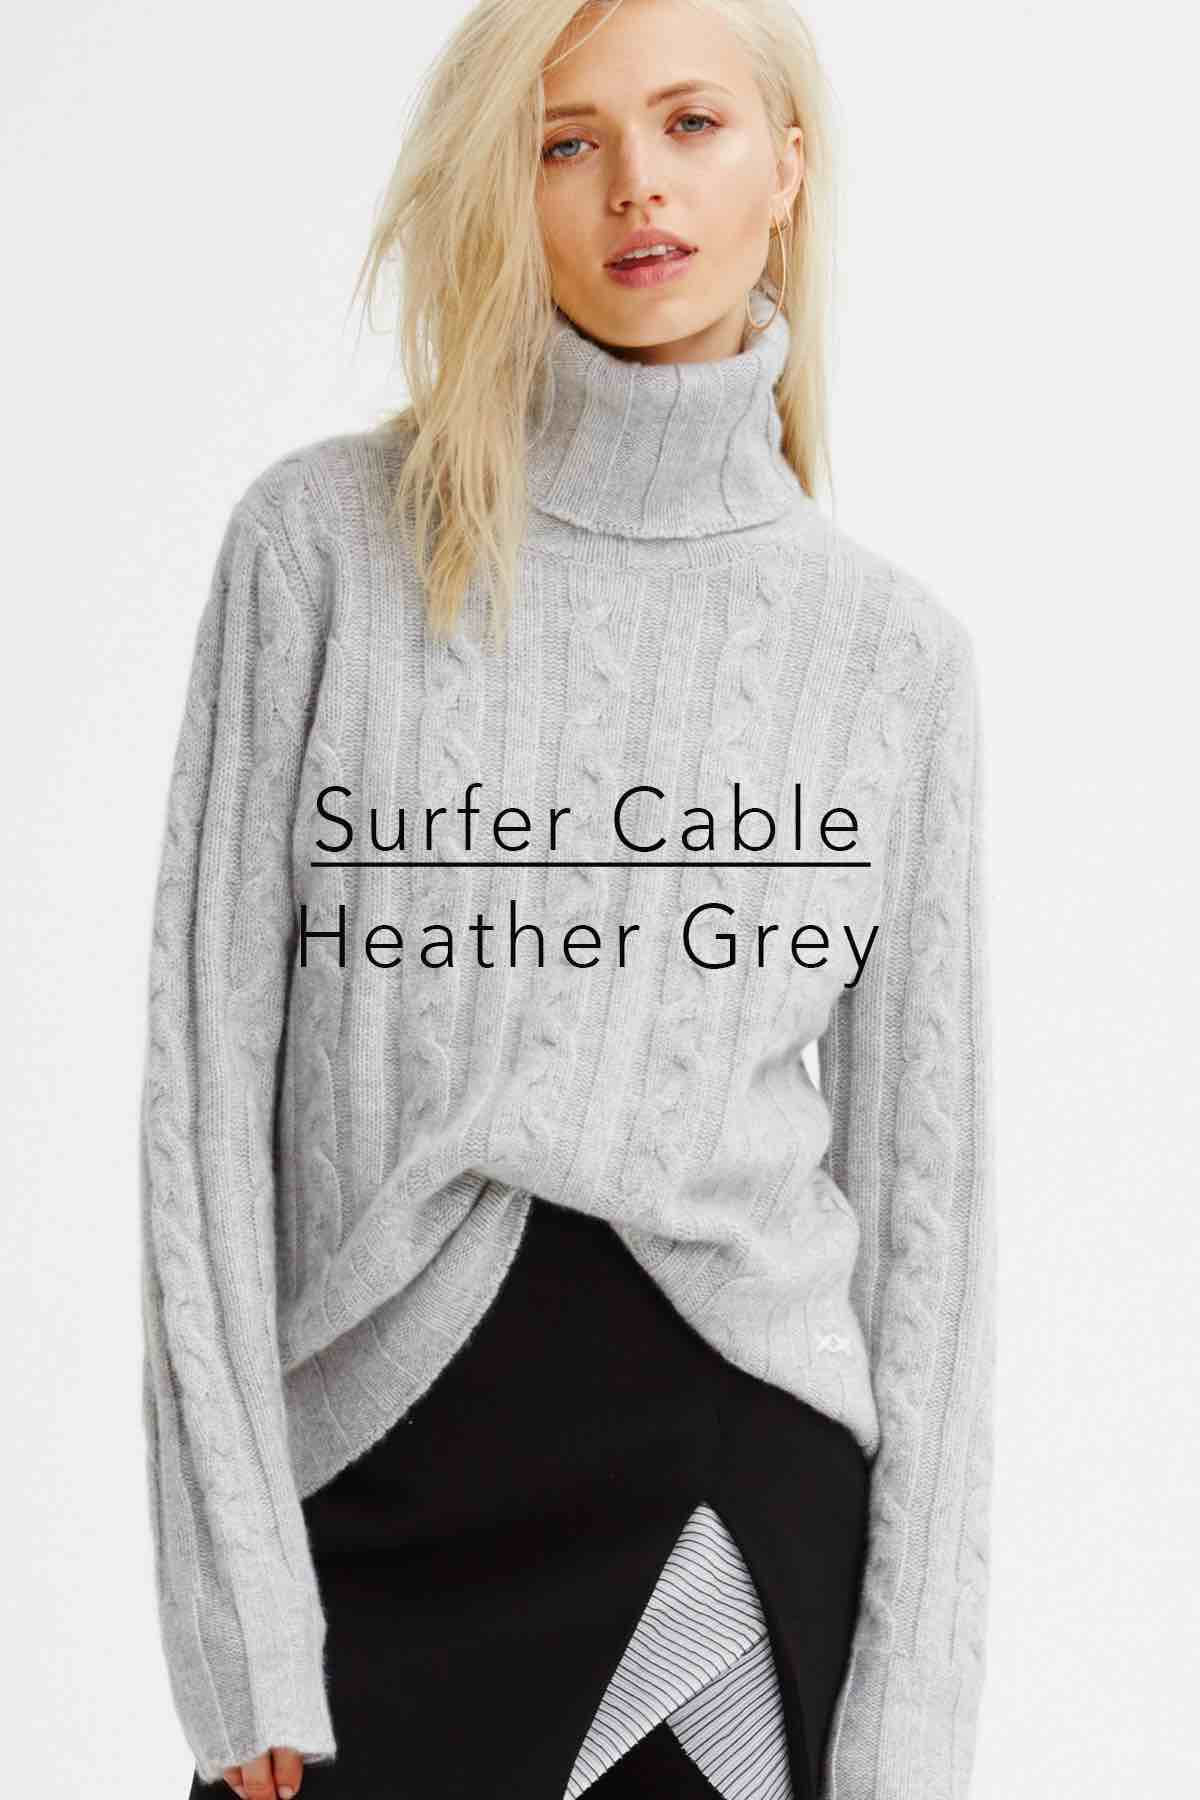 Surfer Cable Heather Grey